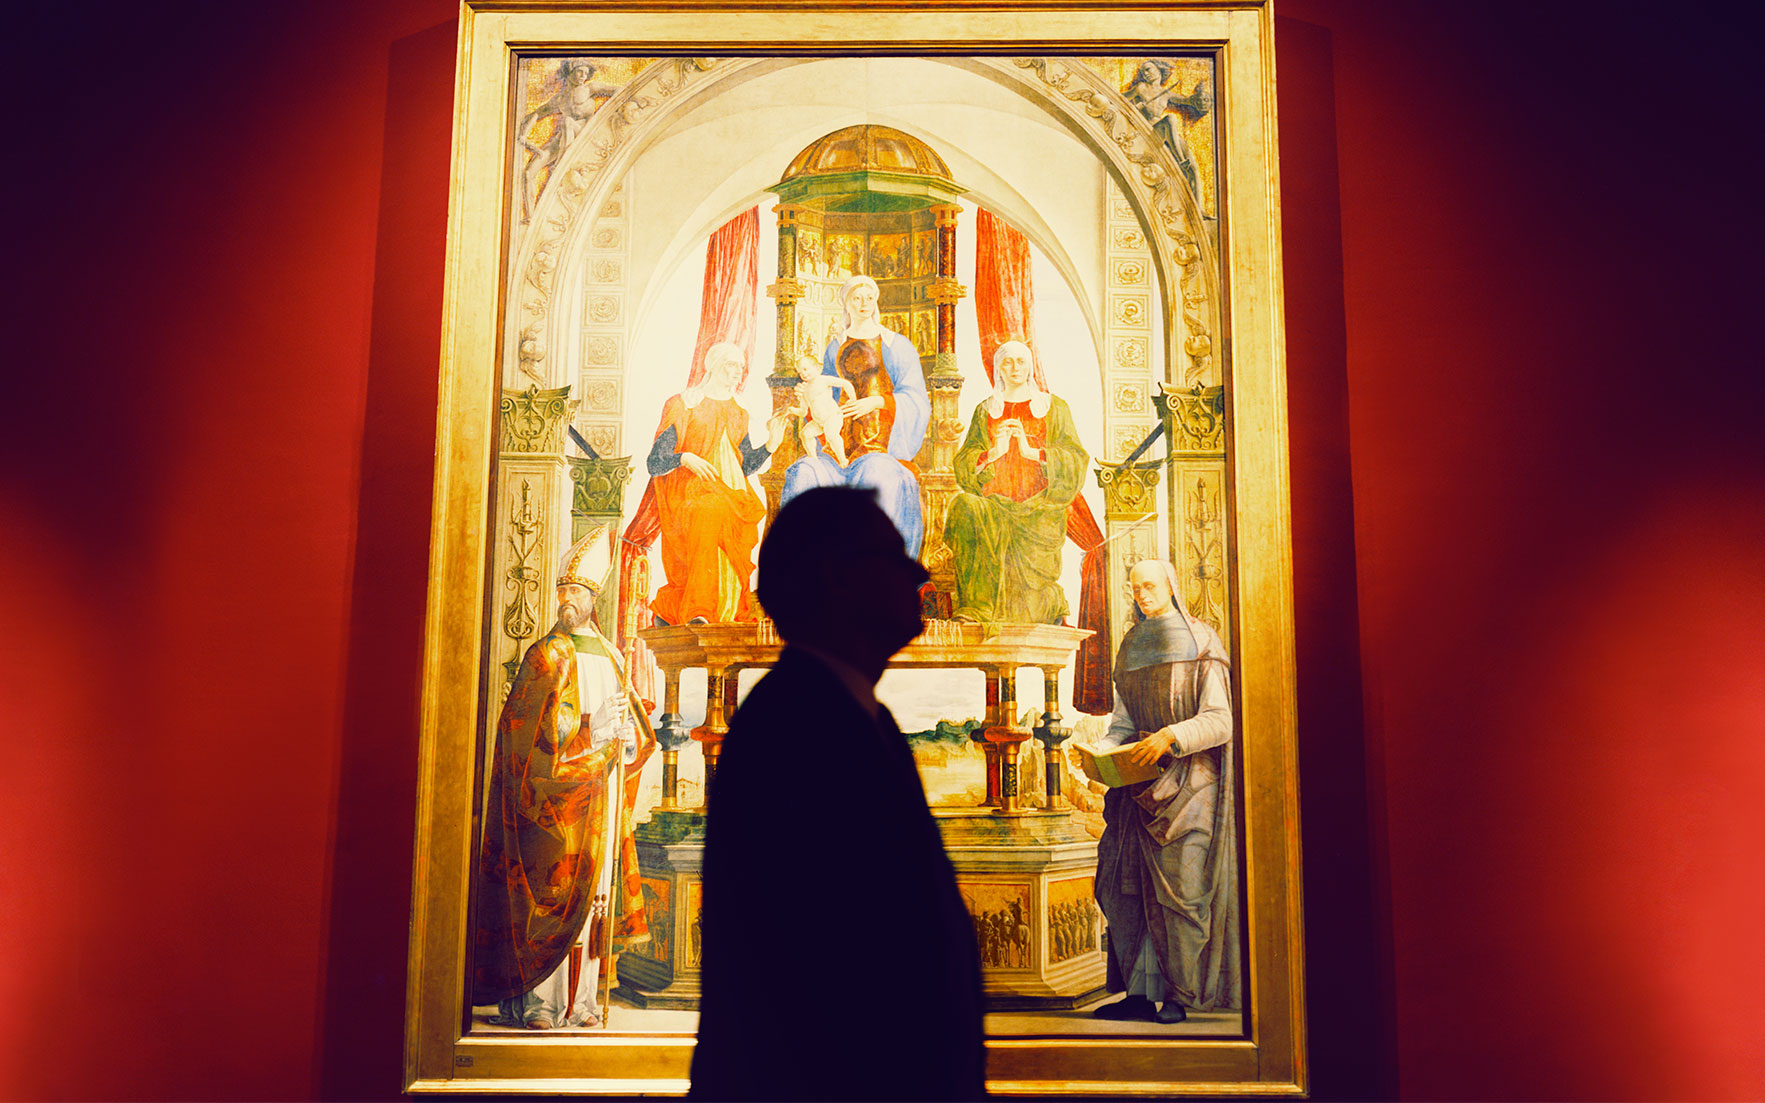 Bradburne in front of Ercole de' Roberti's Madonna and Child Enthroned with Saints. Photograph by Alberto Zanetti